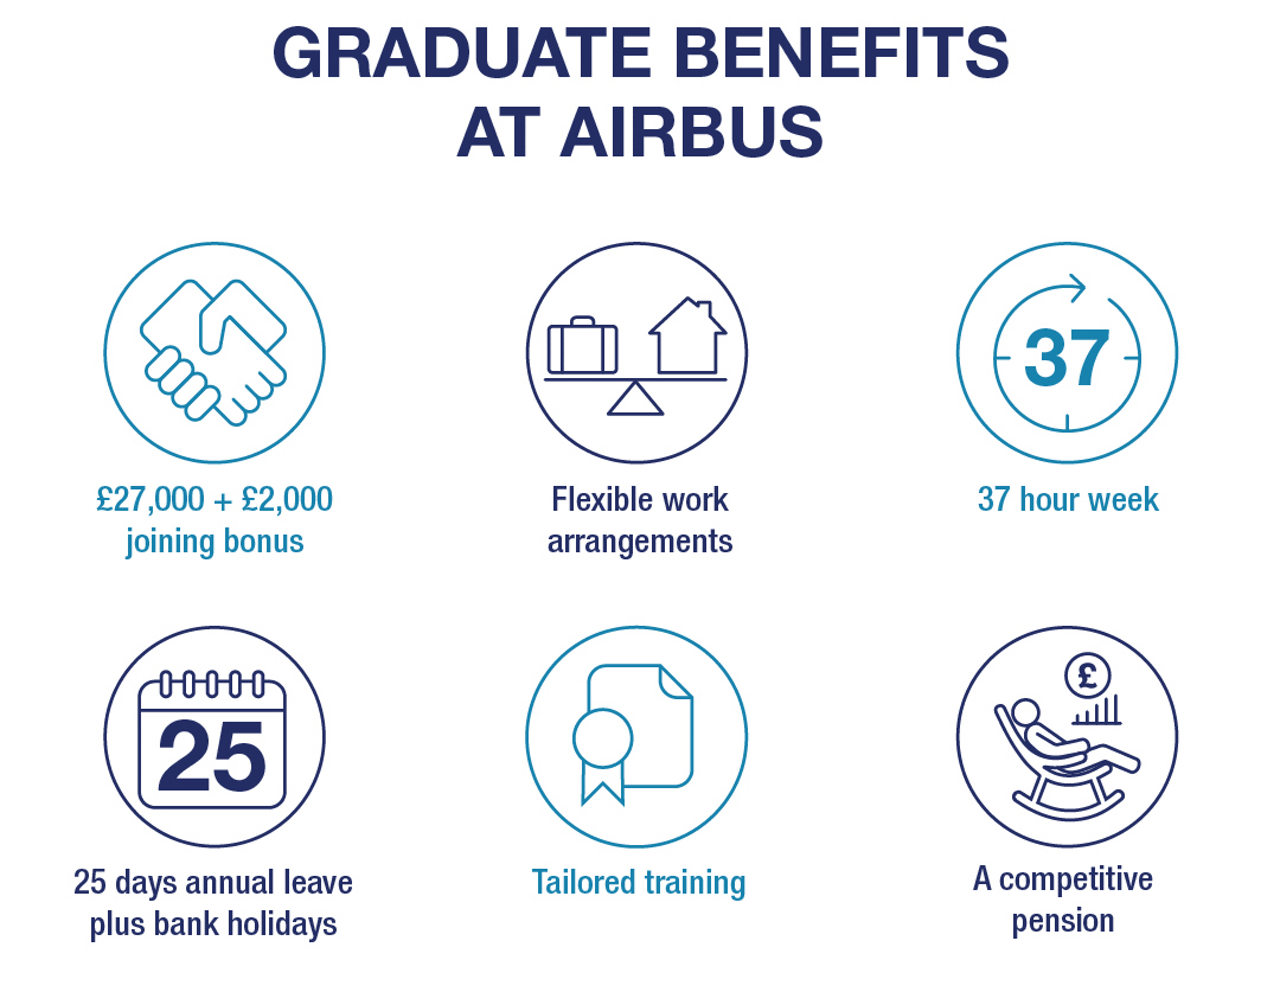 An infographic showing salary and benefit information for those applying to Airbus' UK Graduate Programme: competitive salary + joining bonus, flexible work arrangements, 37 hour week, 25 days annual leave + bank holidays, tailored training, a competitive pension.